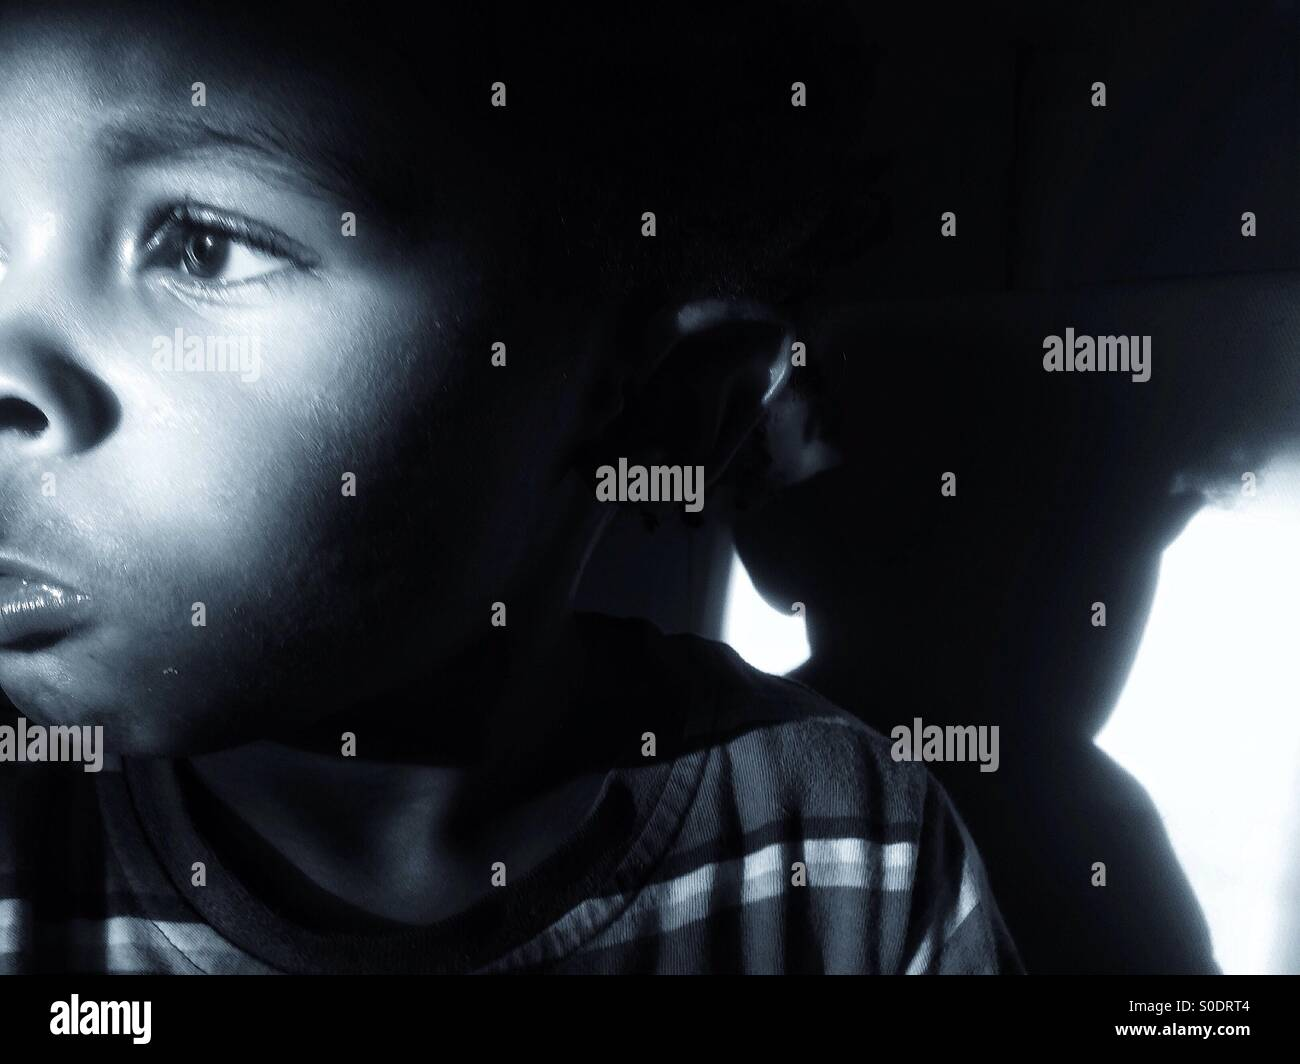 Sad little boy looking away from the camera. - Stock Image